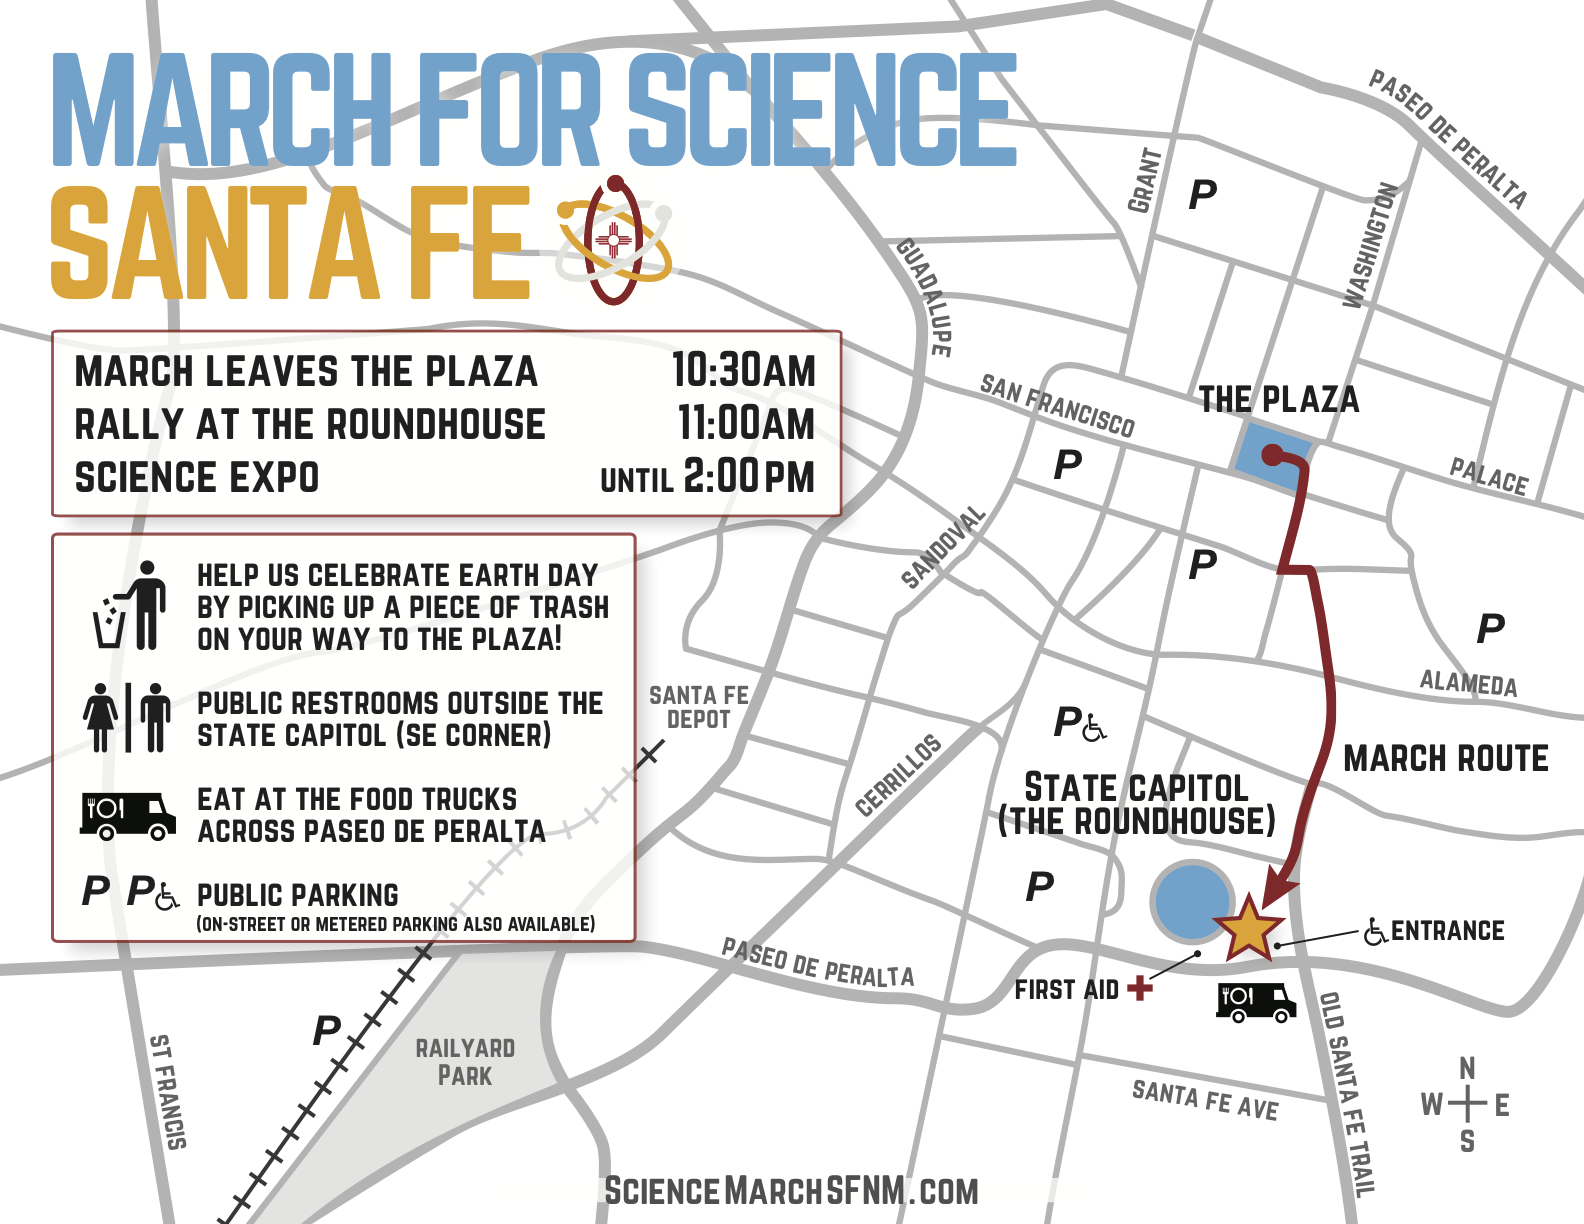 The Event – March for Science Santa Fe on loretto chapel map, 1964 santa fe rail map, santa fe parking map, ski santa fe map, santa fe downtown map, new mexico map, santa fe neighborhood map, santa fe visitors map, santa fe street map, la fonda santa fe map, santa fe opera map, las trampas map, santa fe airport map, city of santa fe map, santa fe tourist map, los cabos riu santa fe map, old santa fe map, sandia peak tramway map, santa fe route map, santa fe nm map,